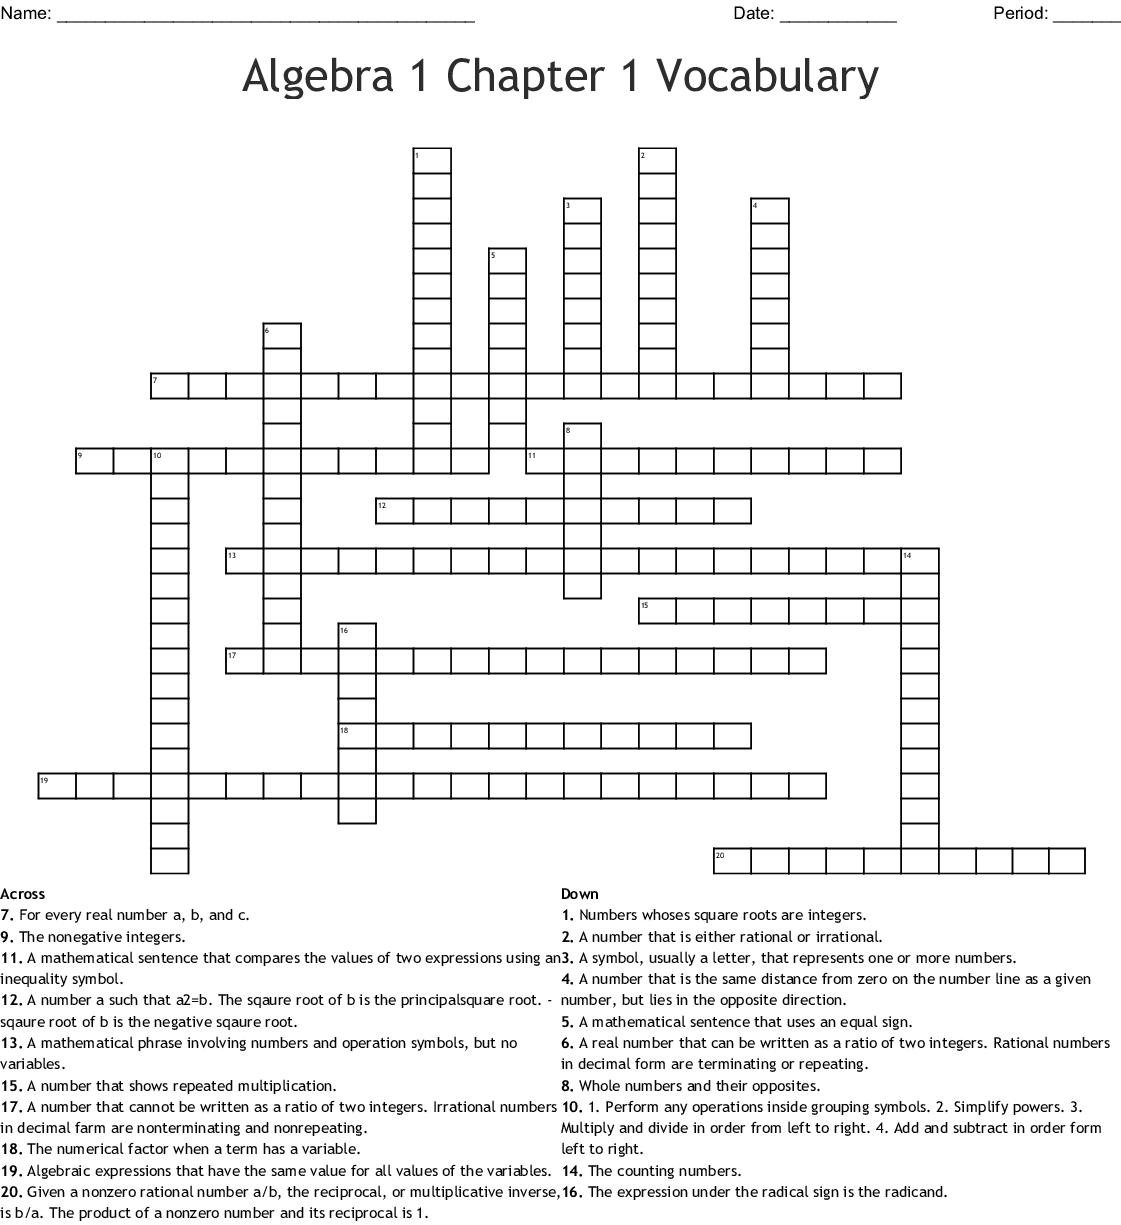 Algebra 1 Chapter 1 Vocabulary Crossword - WordMint